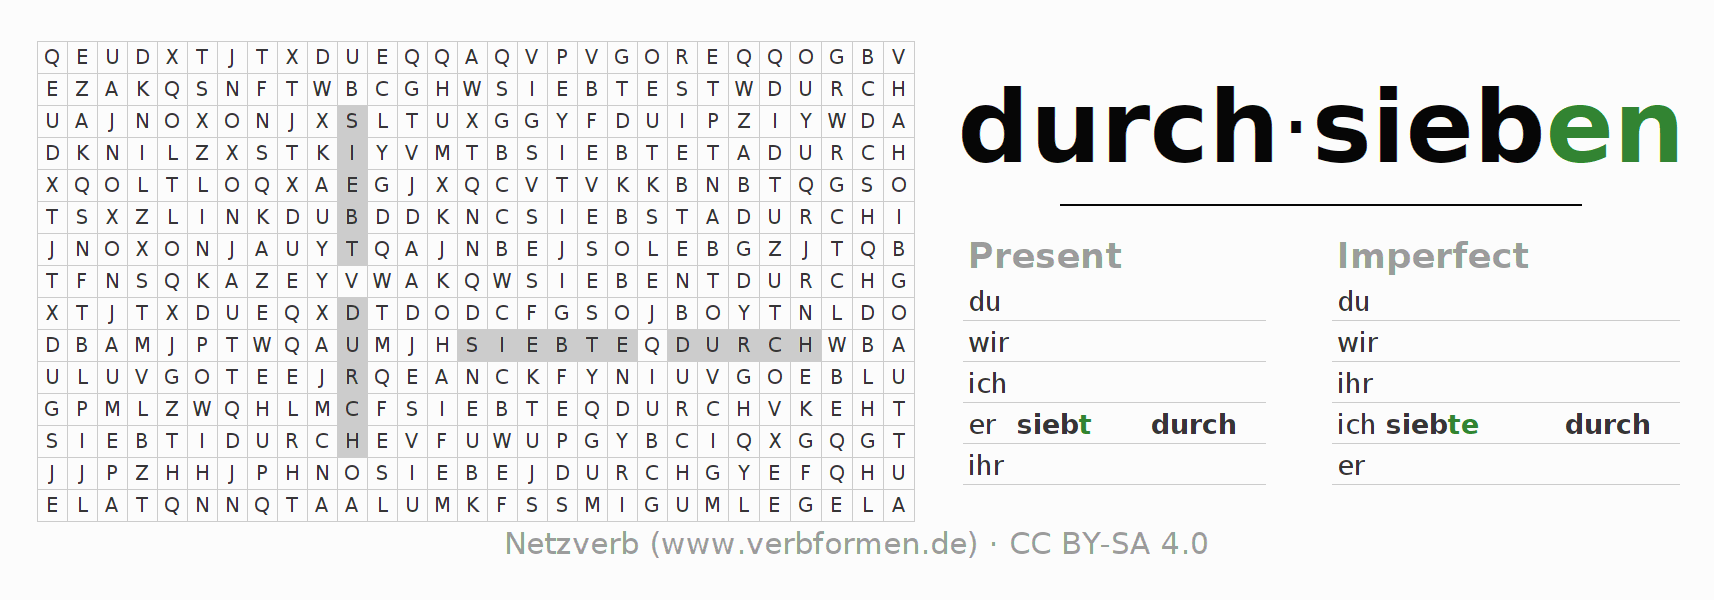 Word search puzzle for the conjugation of the verb durch-sieben